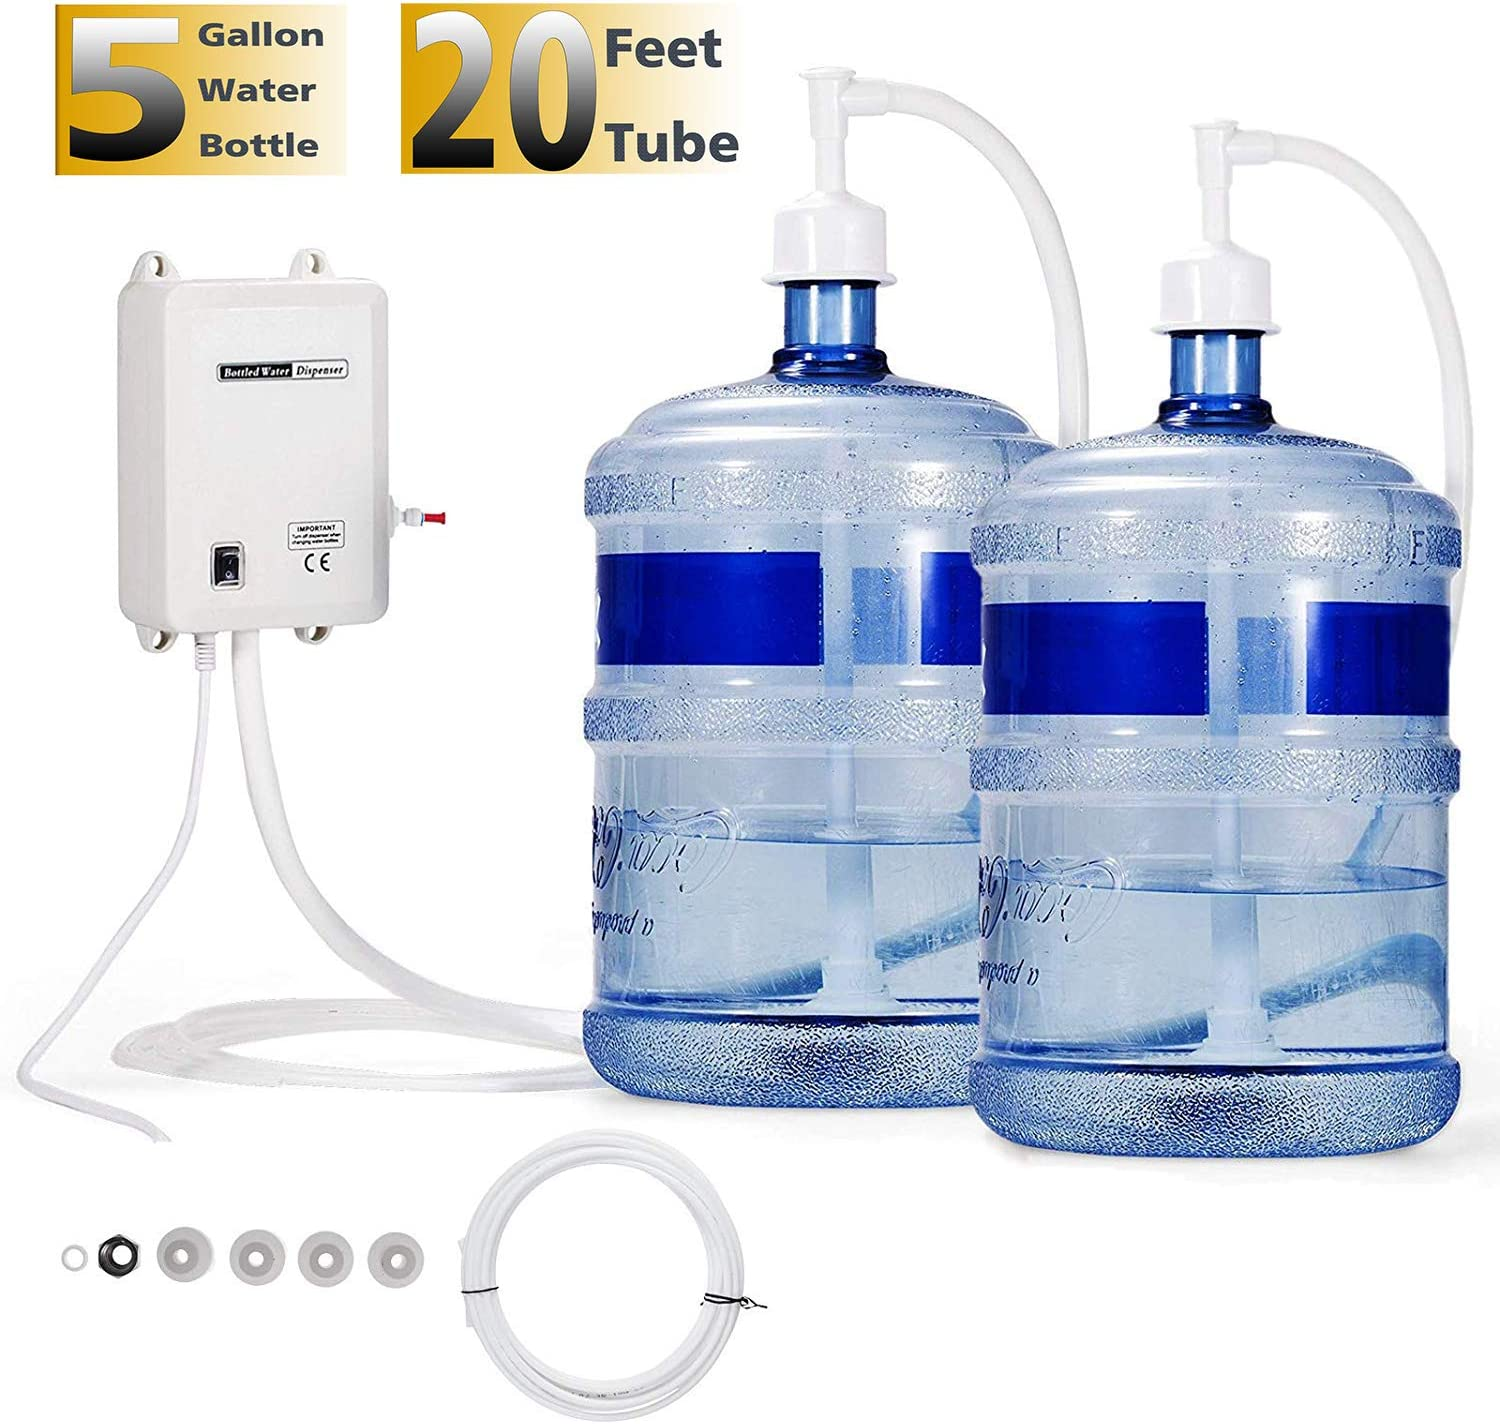 VEVOR Water Dispensing System 20 ft with US Plug 115V AC Perfect for 5 Gallon Bottle, Doubel Inlet